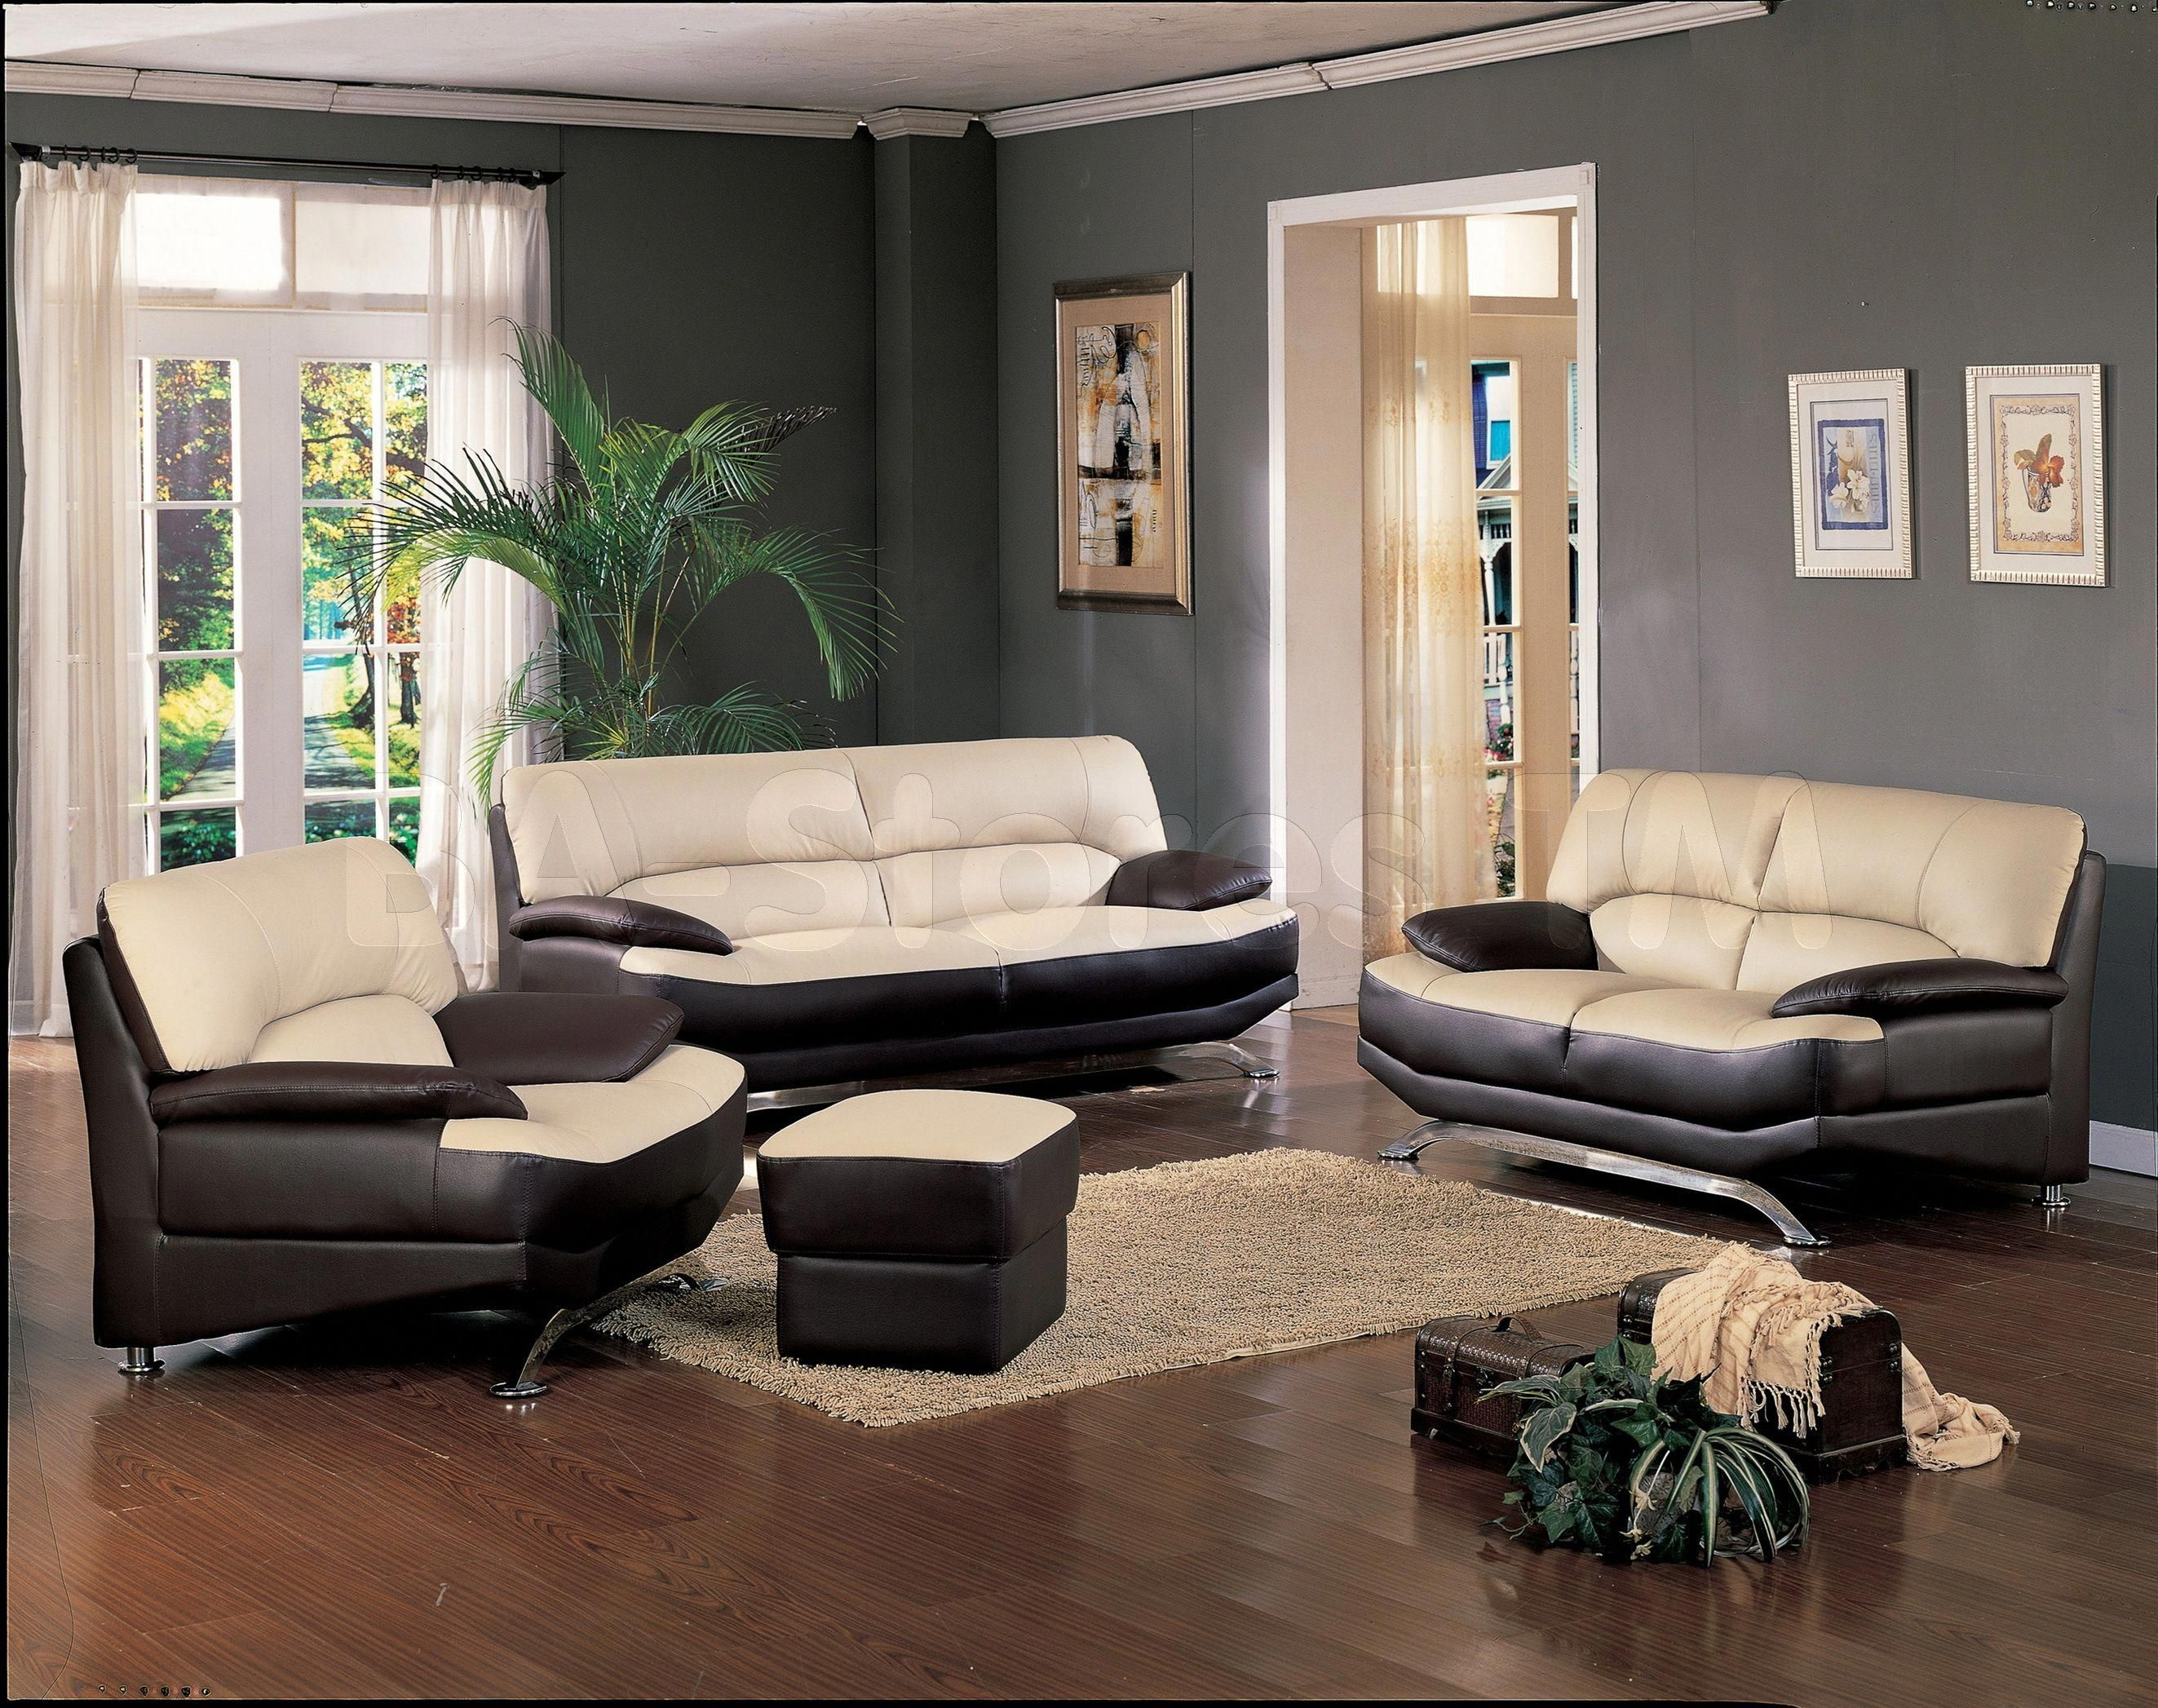 Living Room Cream And Black Leather Sofa On Brown Wooden Floor Connected By White Curtains On Brown Living Room Brown Living Room Decor Living Room Decor Gray